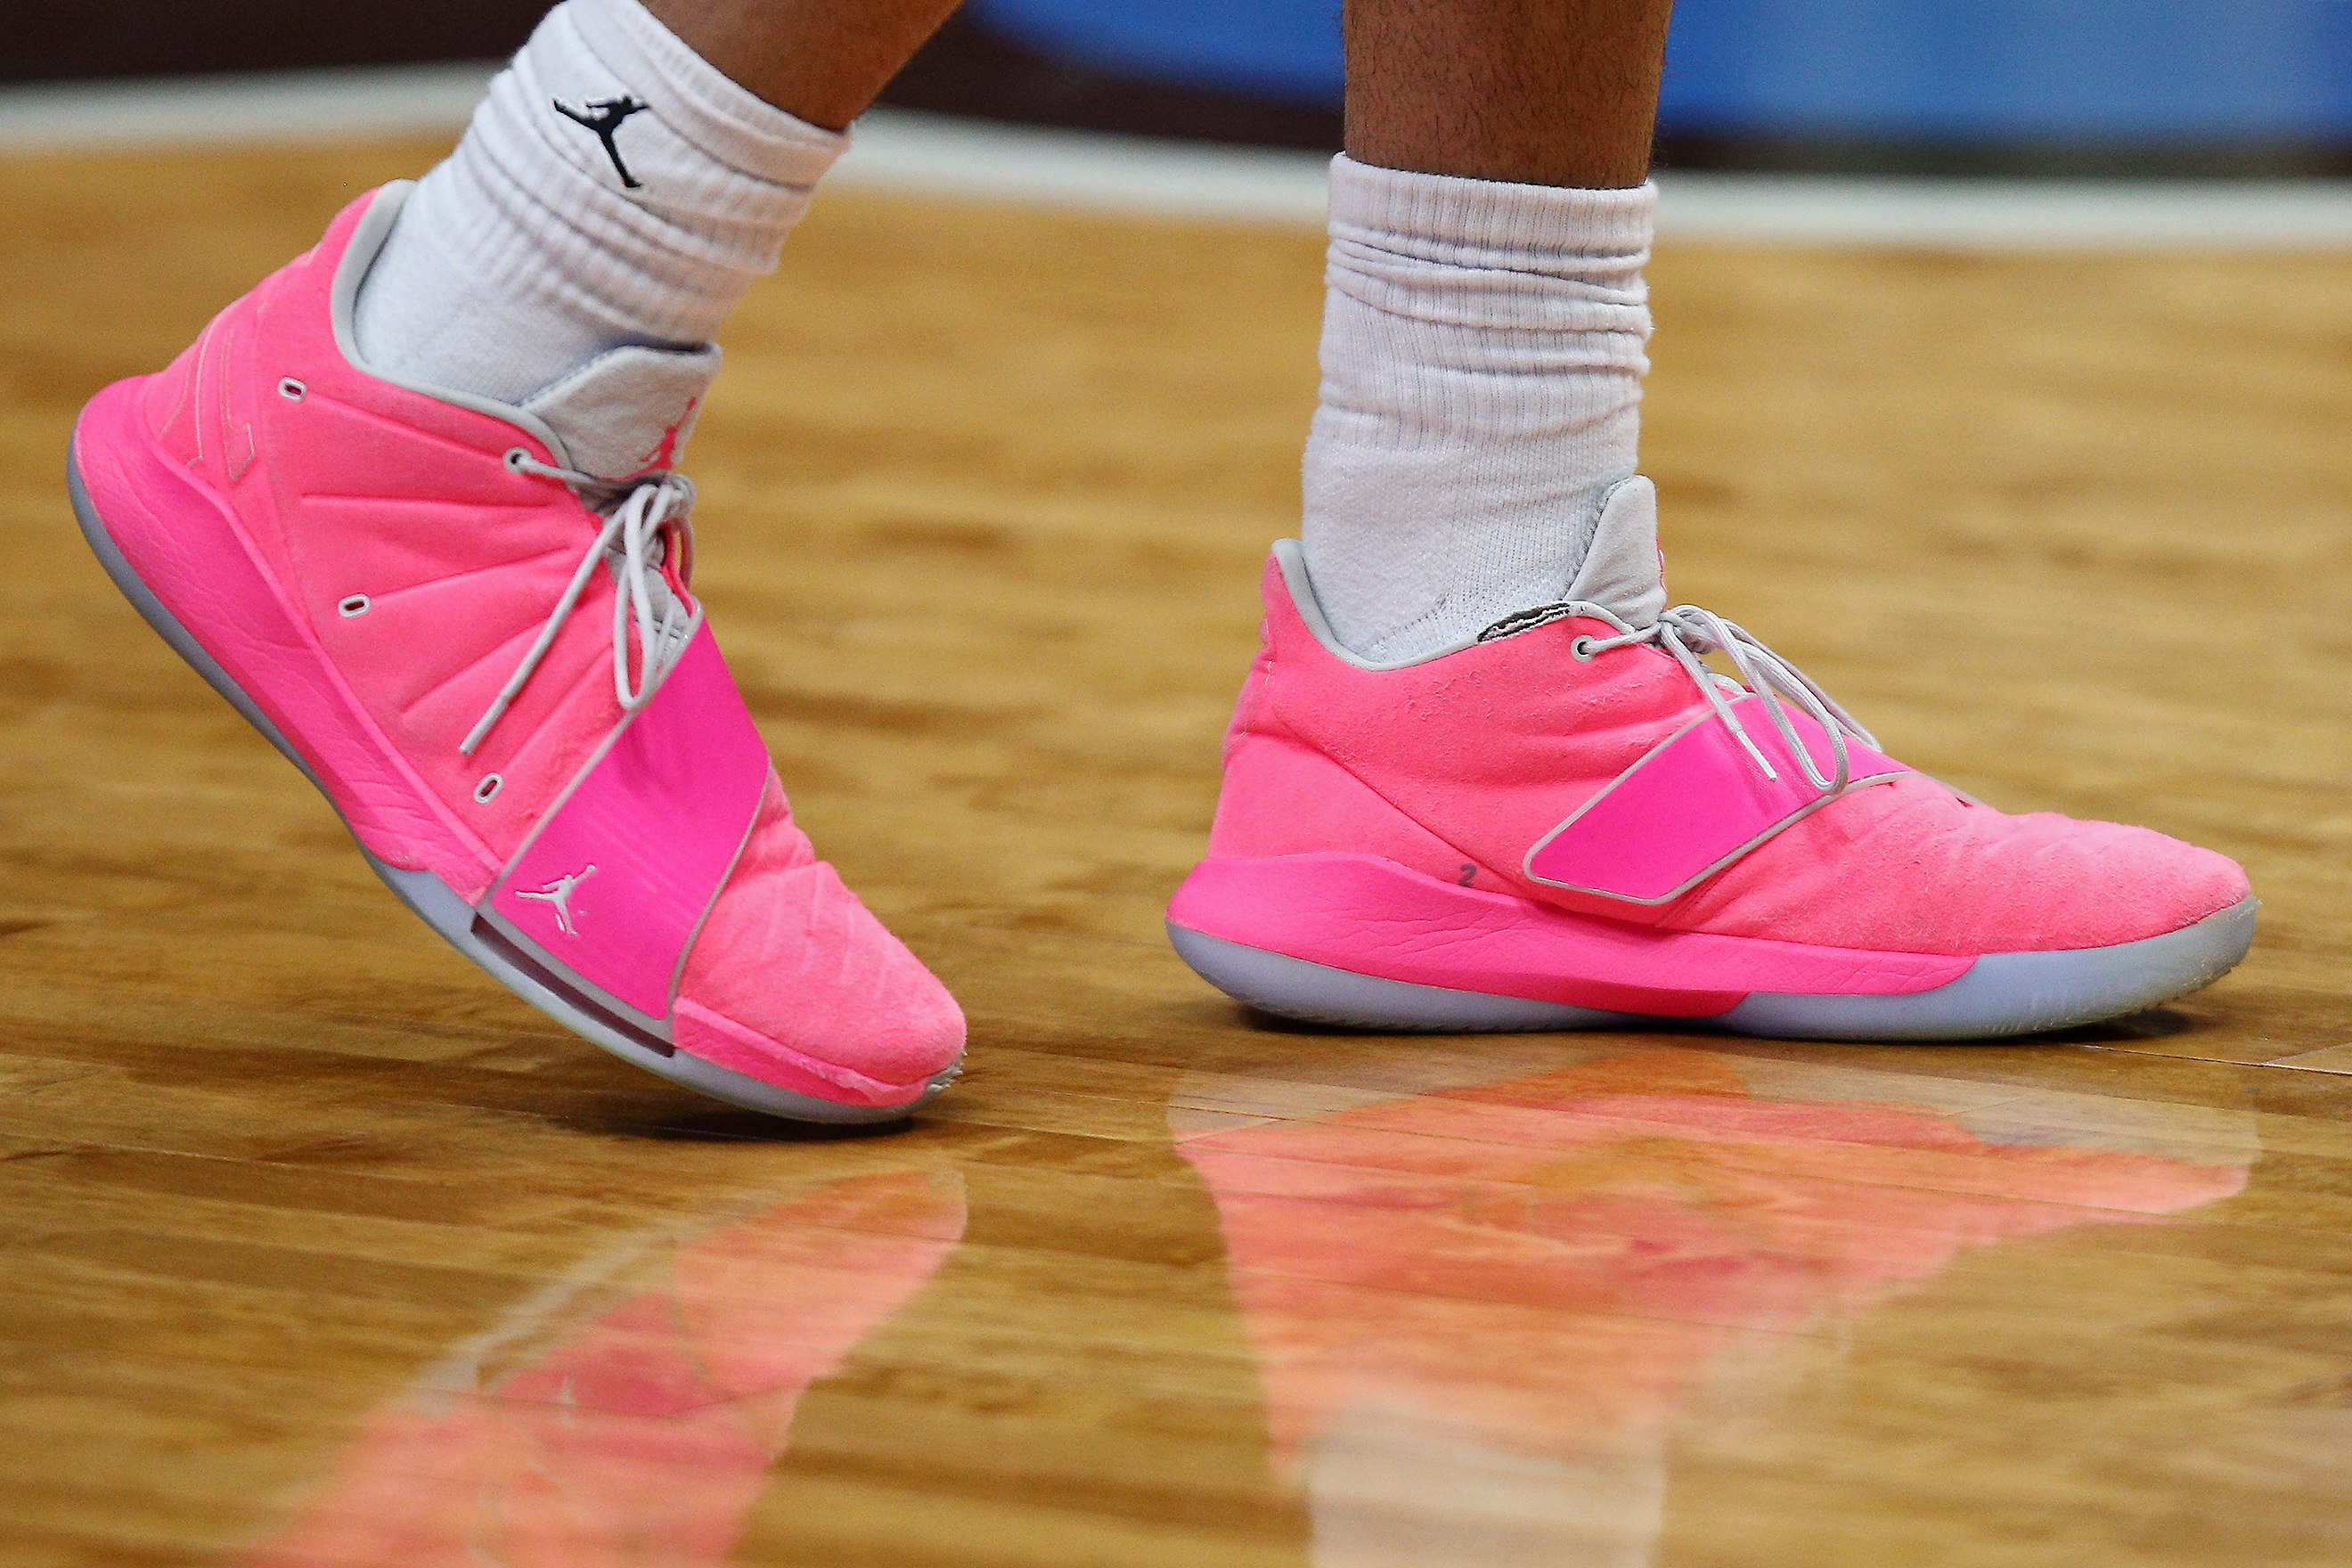 Why do some Michigan basketball players wear pink shoes? - mlive.com